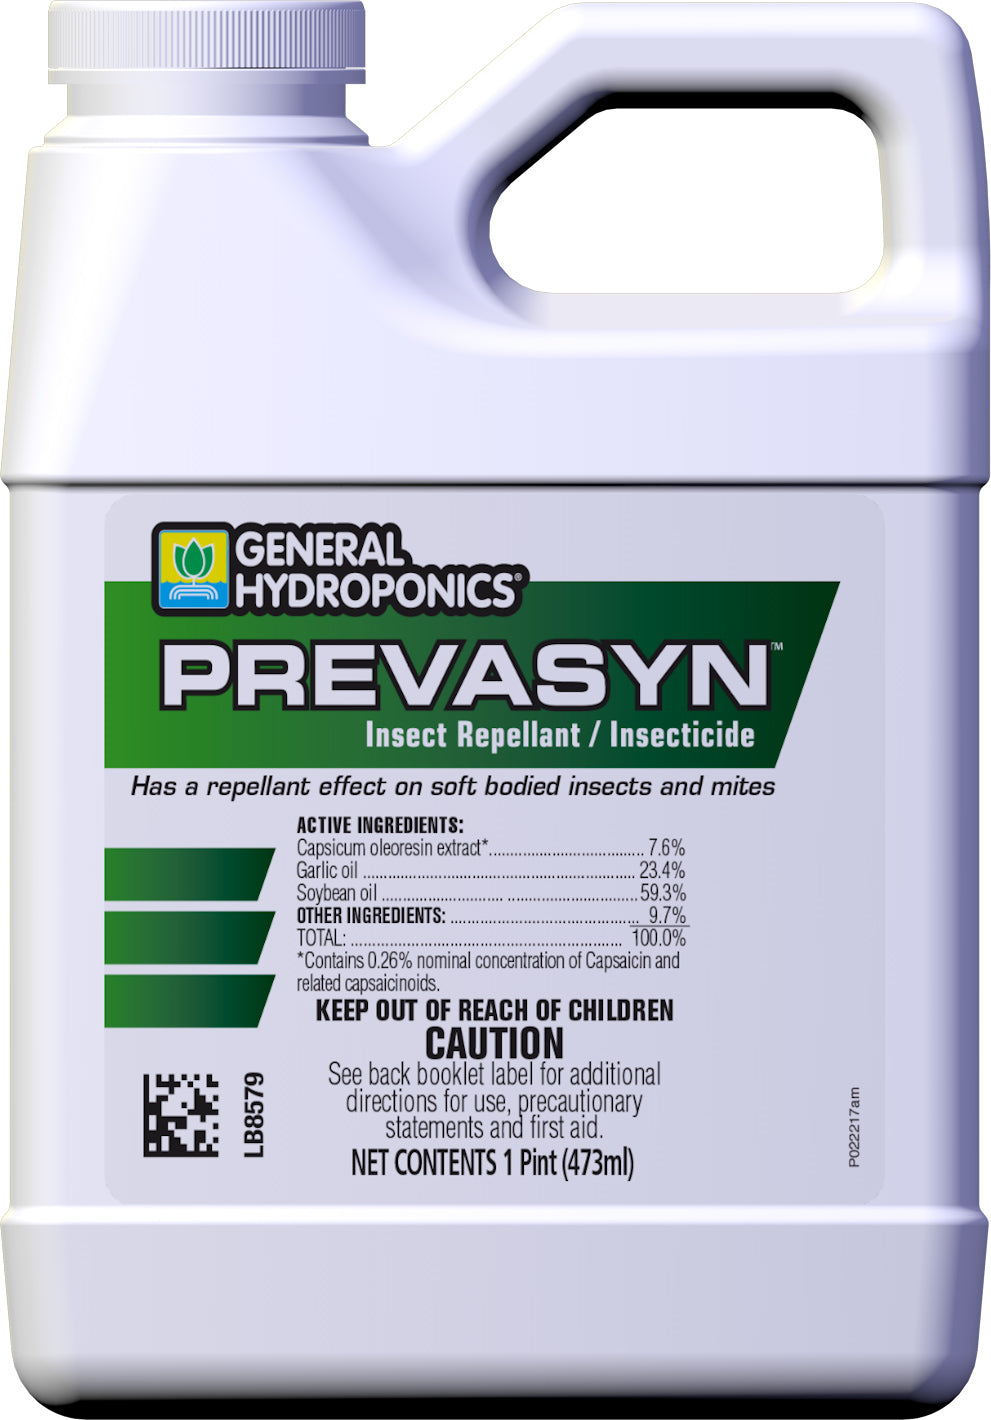 GH Prevasyn Insect Repellant / Insecticide